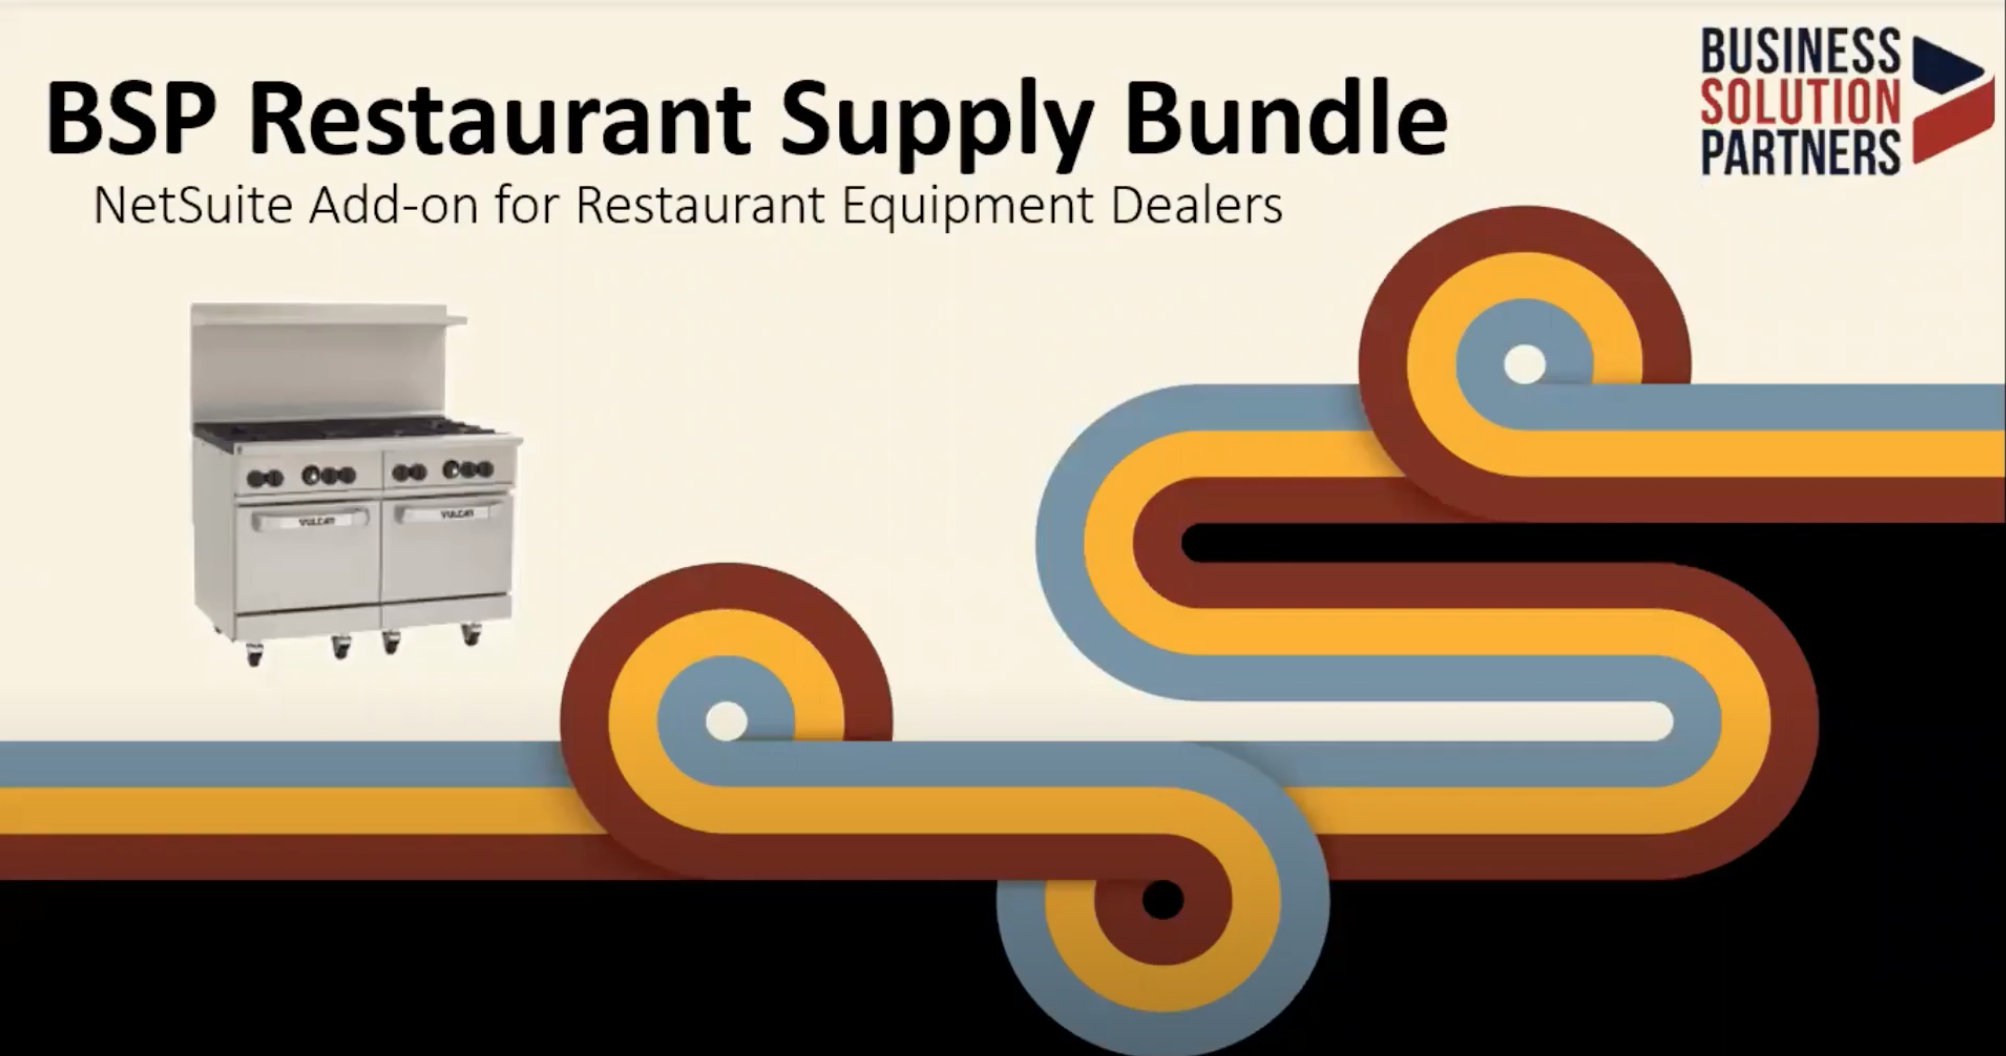 Restaurant Supply Bundle video screenshot